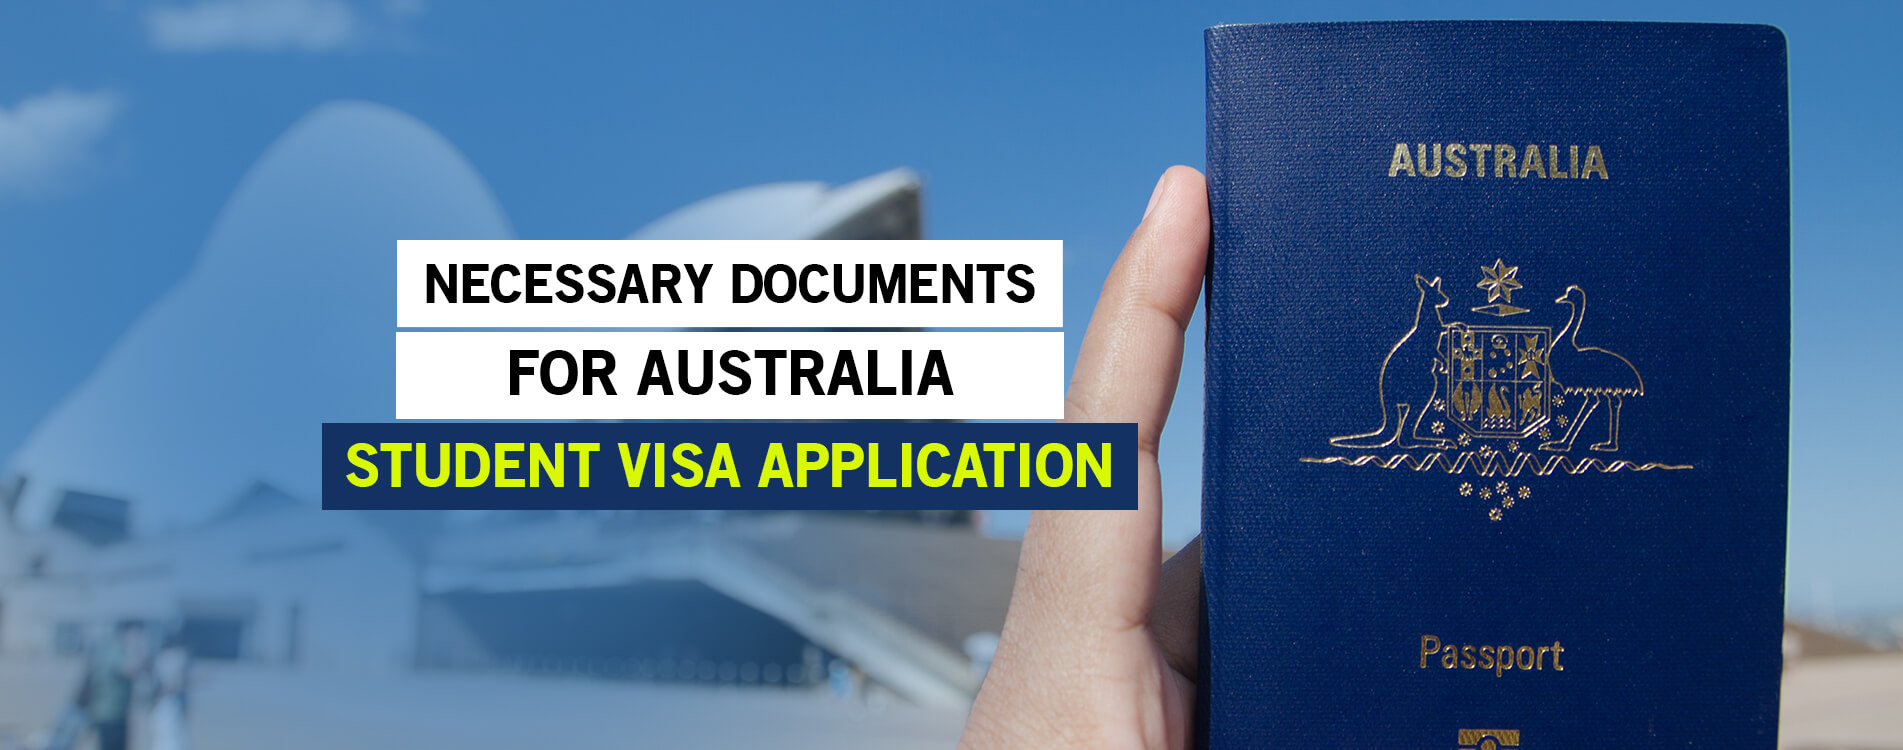 Necessary Documents for Australia Student Visa Application